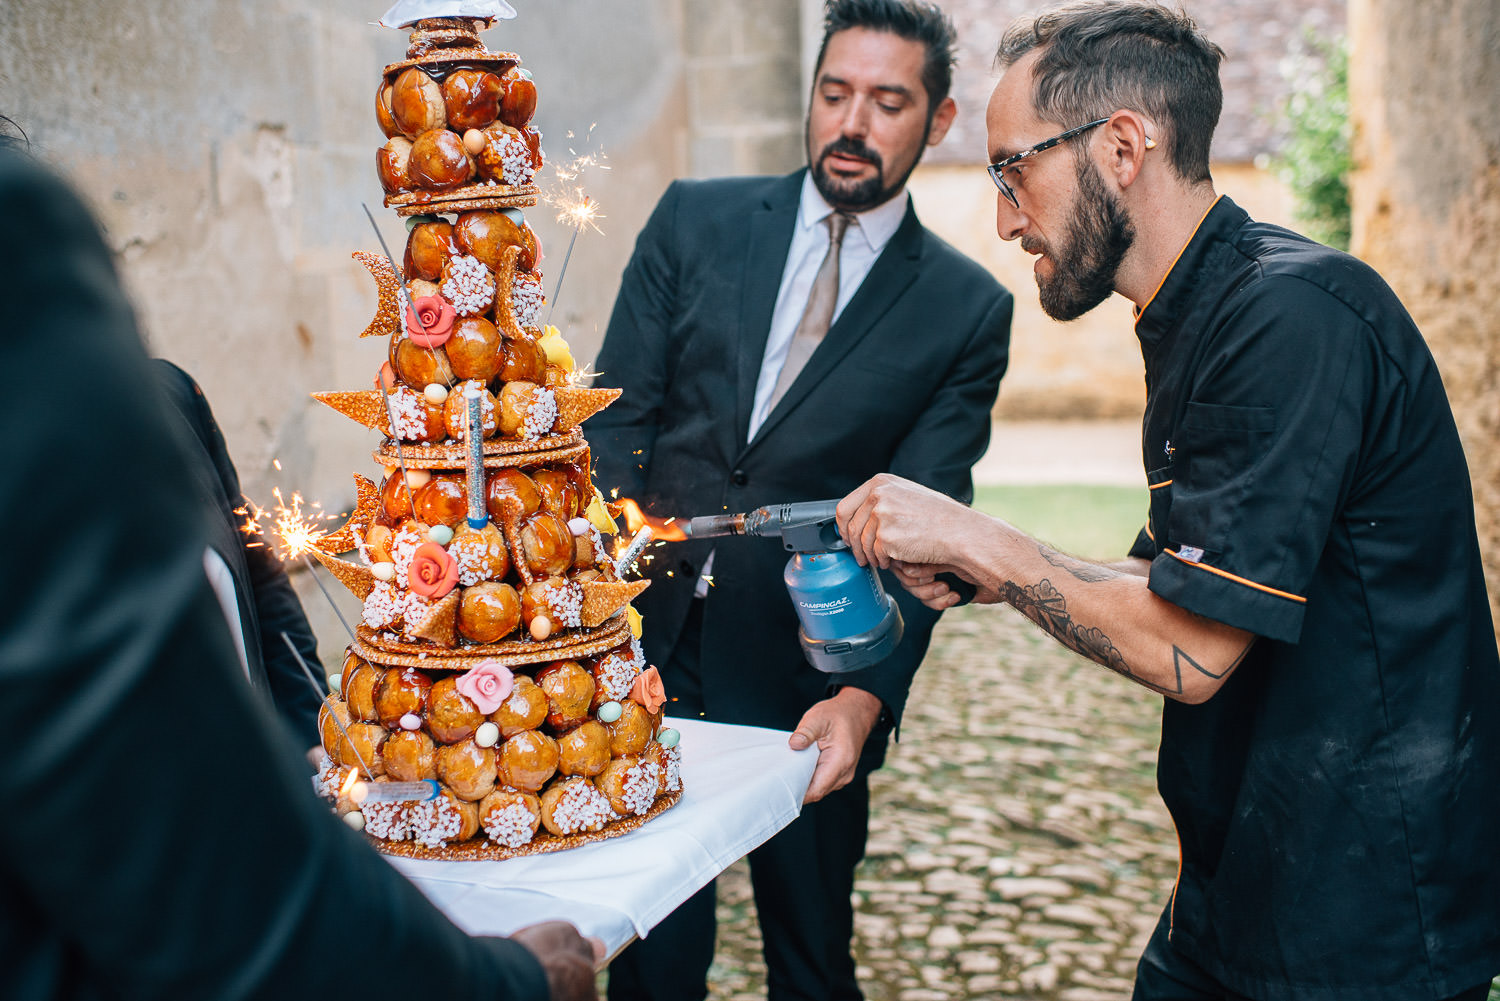 cake cutting at chateau de bourlie by creative and alternative london wedding photographer the shannons photography